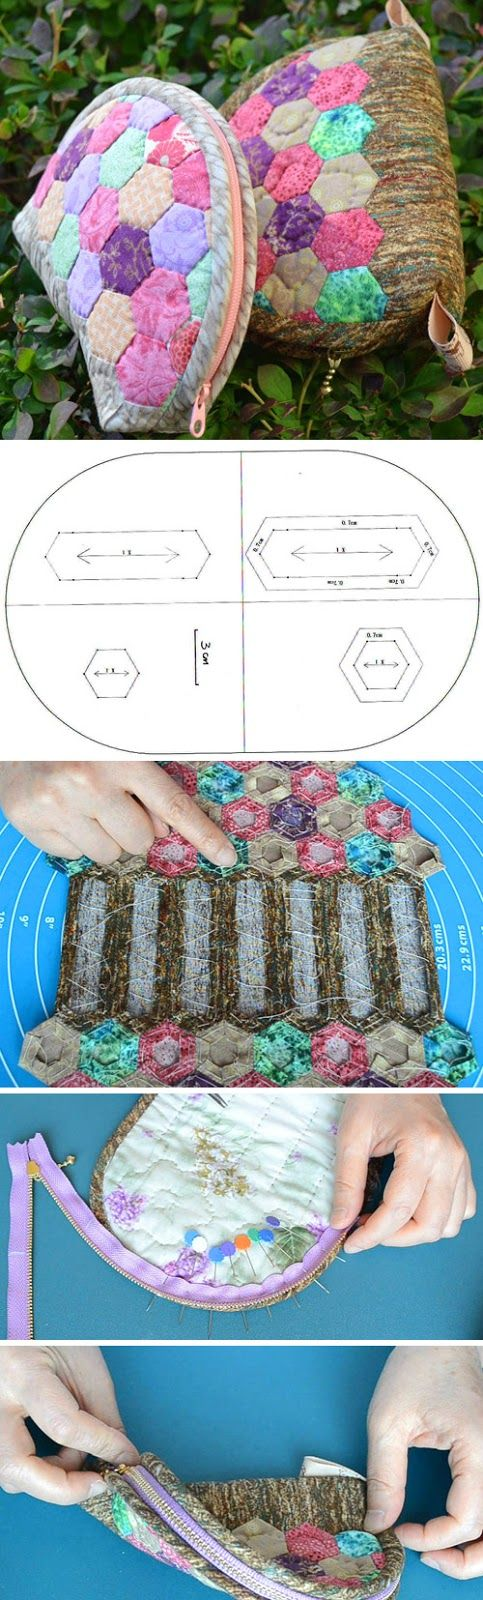 Hexagon Patchwork Purse Tutorial. How to Sew Photo Sewing Tutorial. http://www.handmadiya.com/2016/04/hexagon-patchwork-purse-tutorial.html